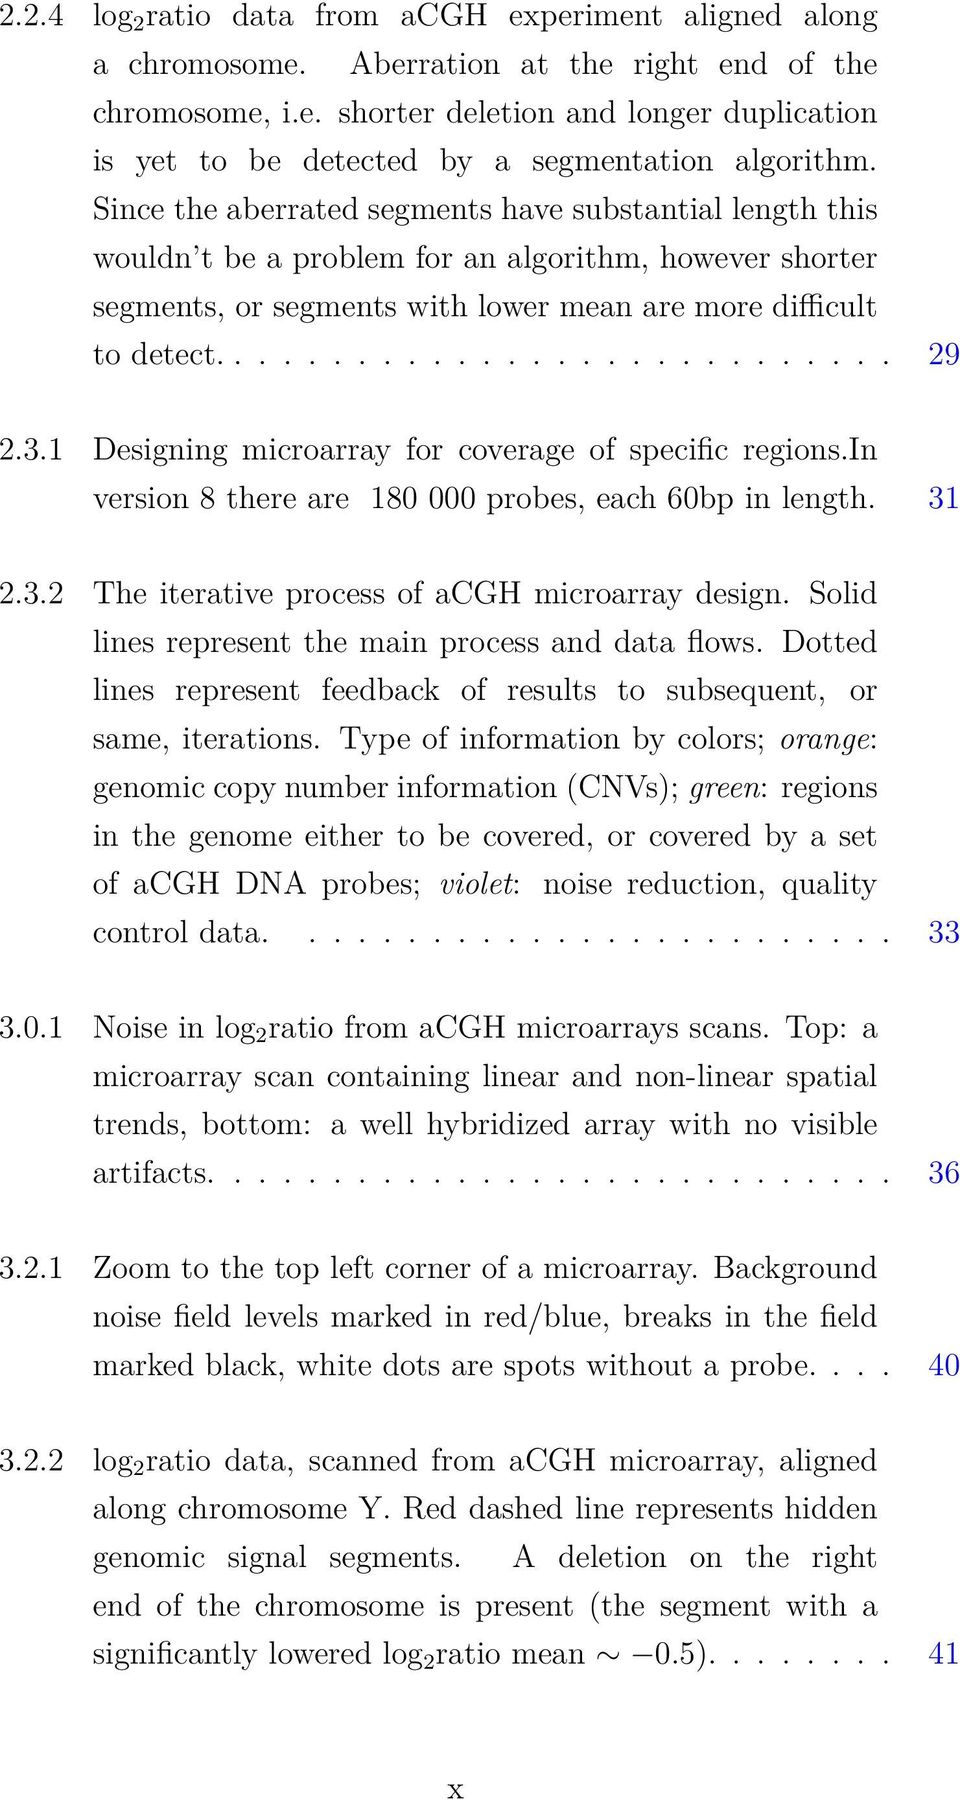 3.1 Designing microarray for coverage of specific regions.in version 8 there are 180 000 probes, each 60bp in length. 31 2.3.2 The iterative process of acgh microarray design.